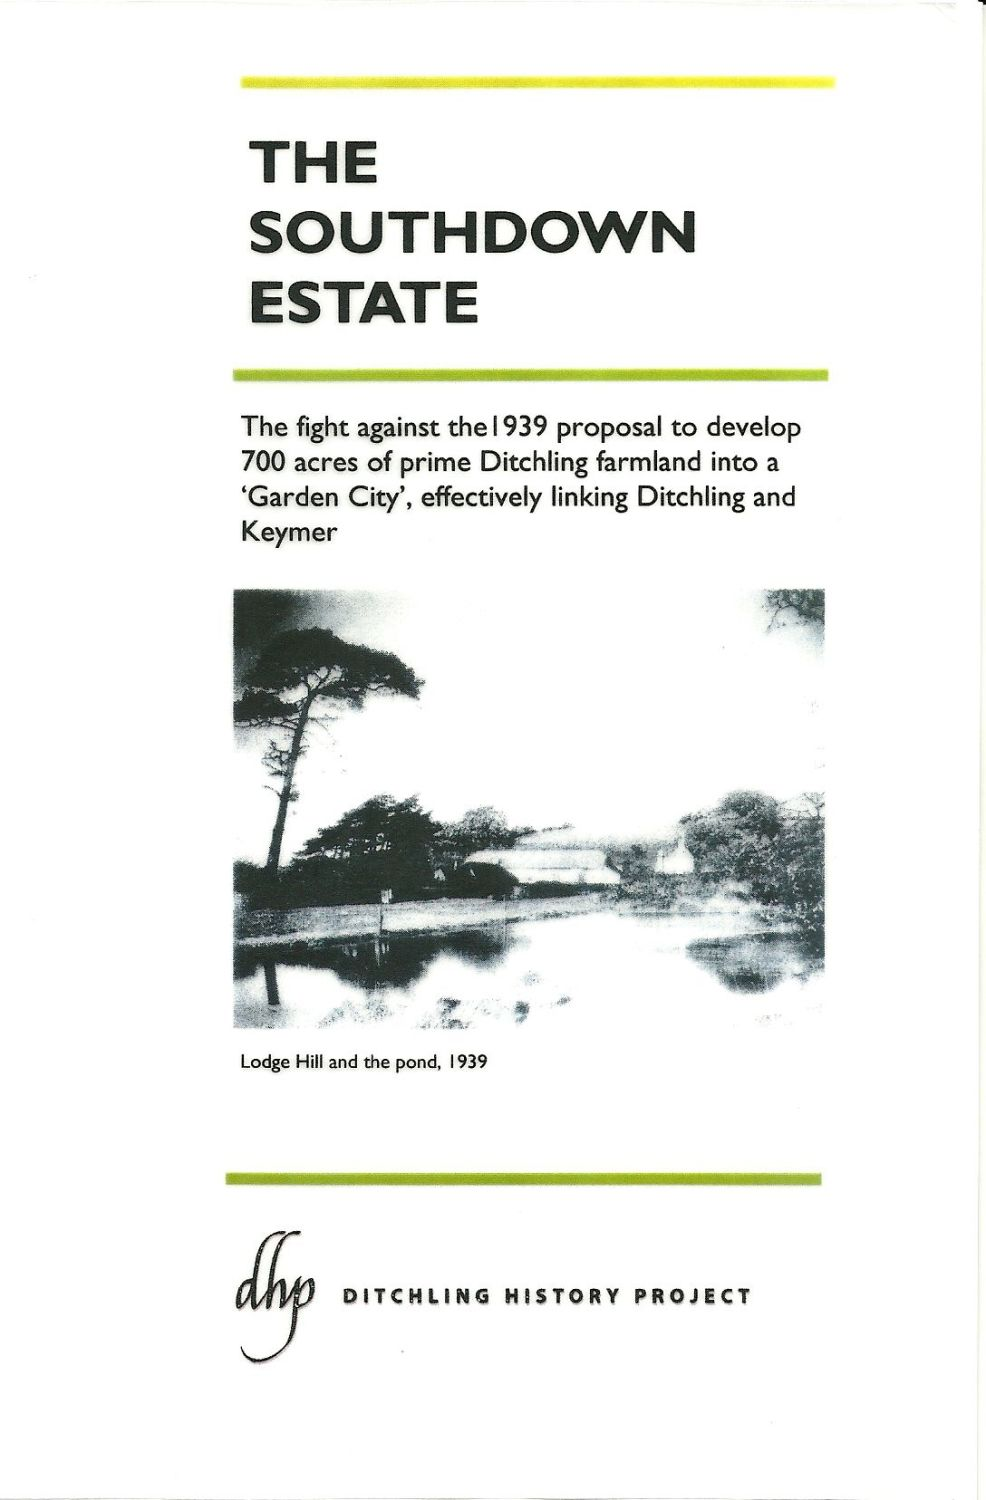 The fight against the Southdown Estate